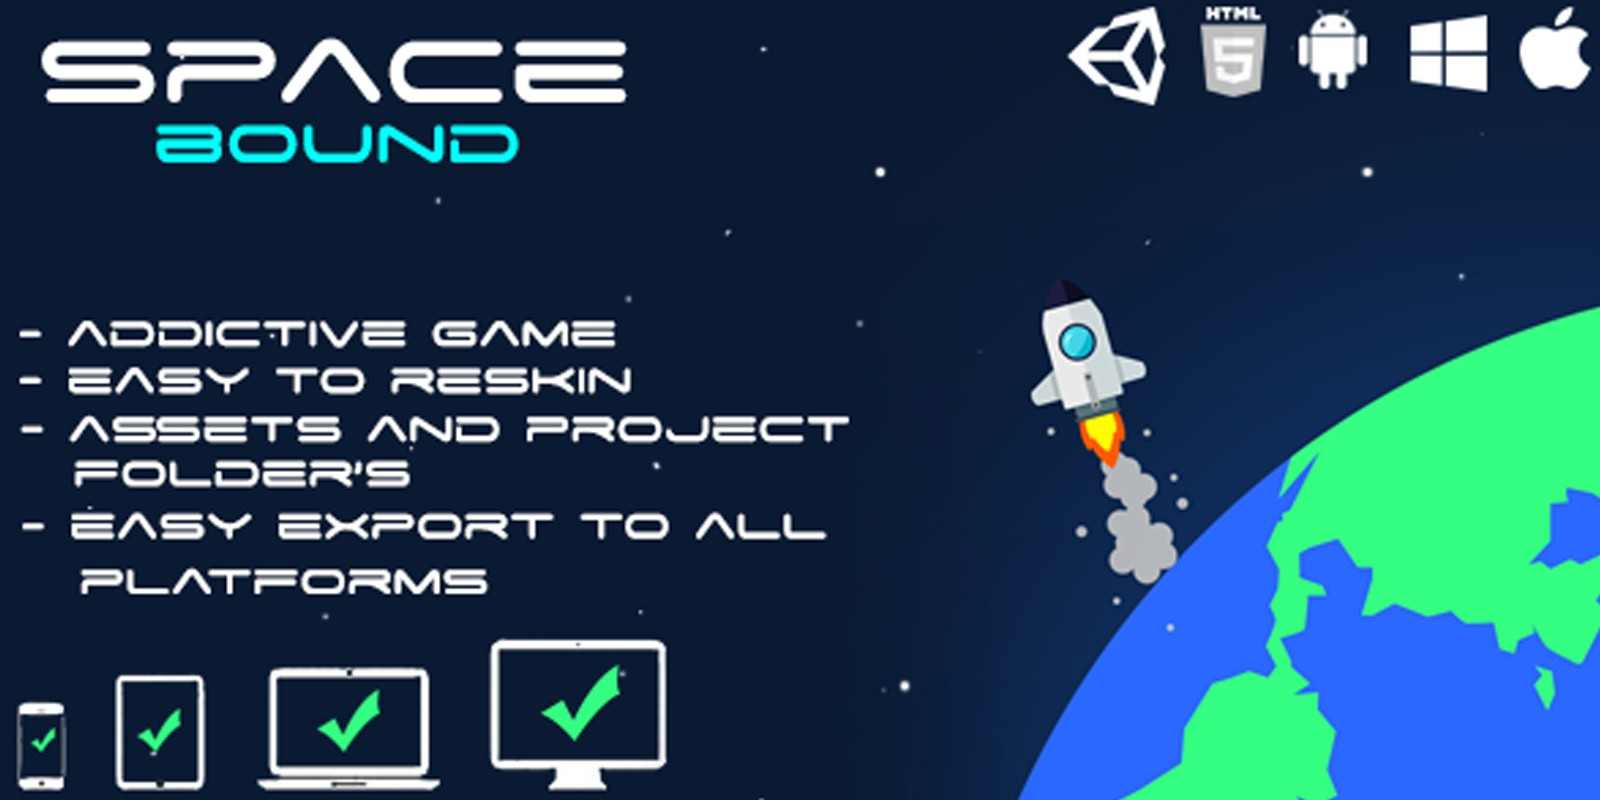 Space Bound - Unity Project And Assets